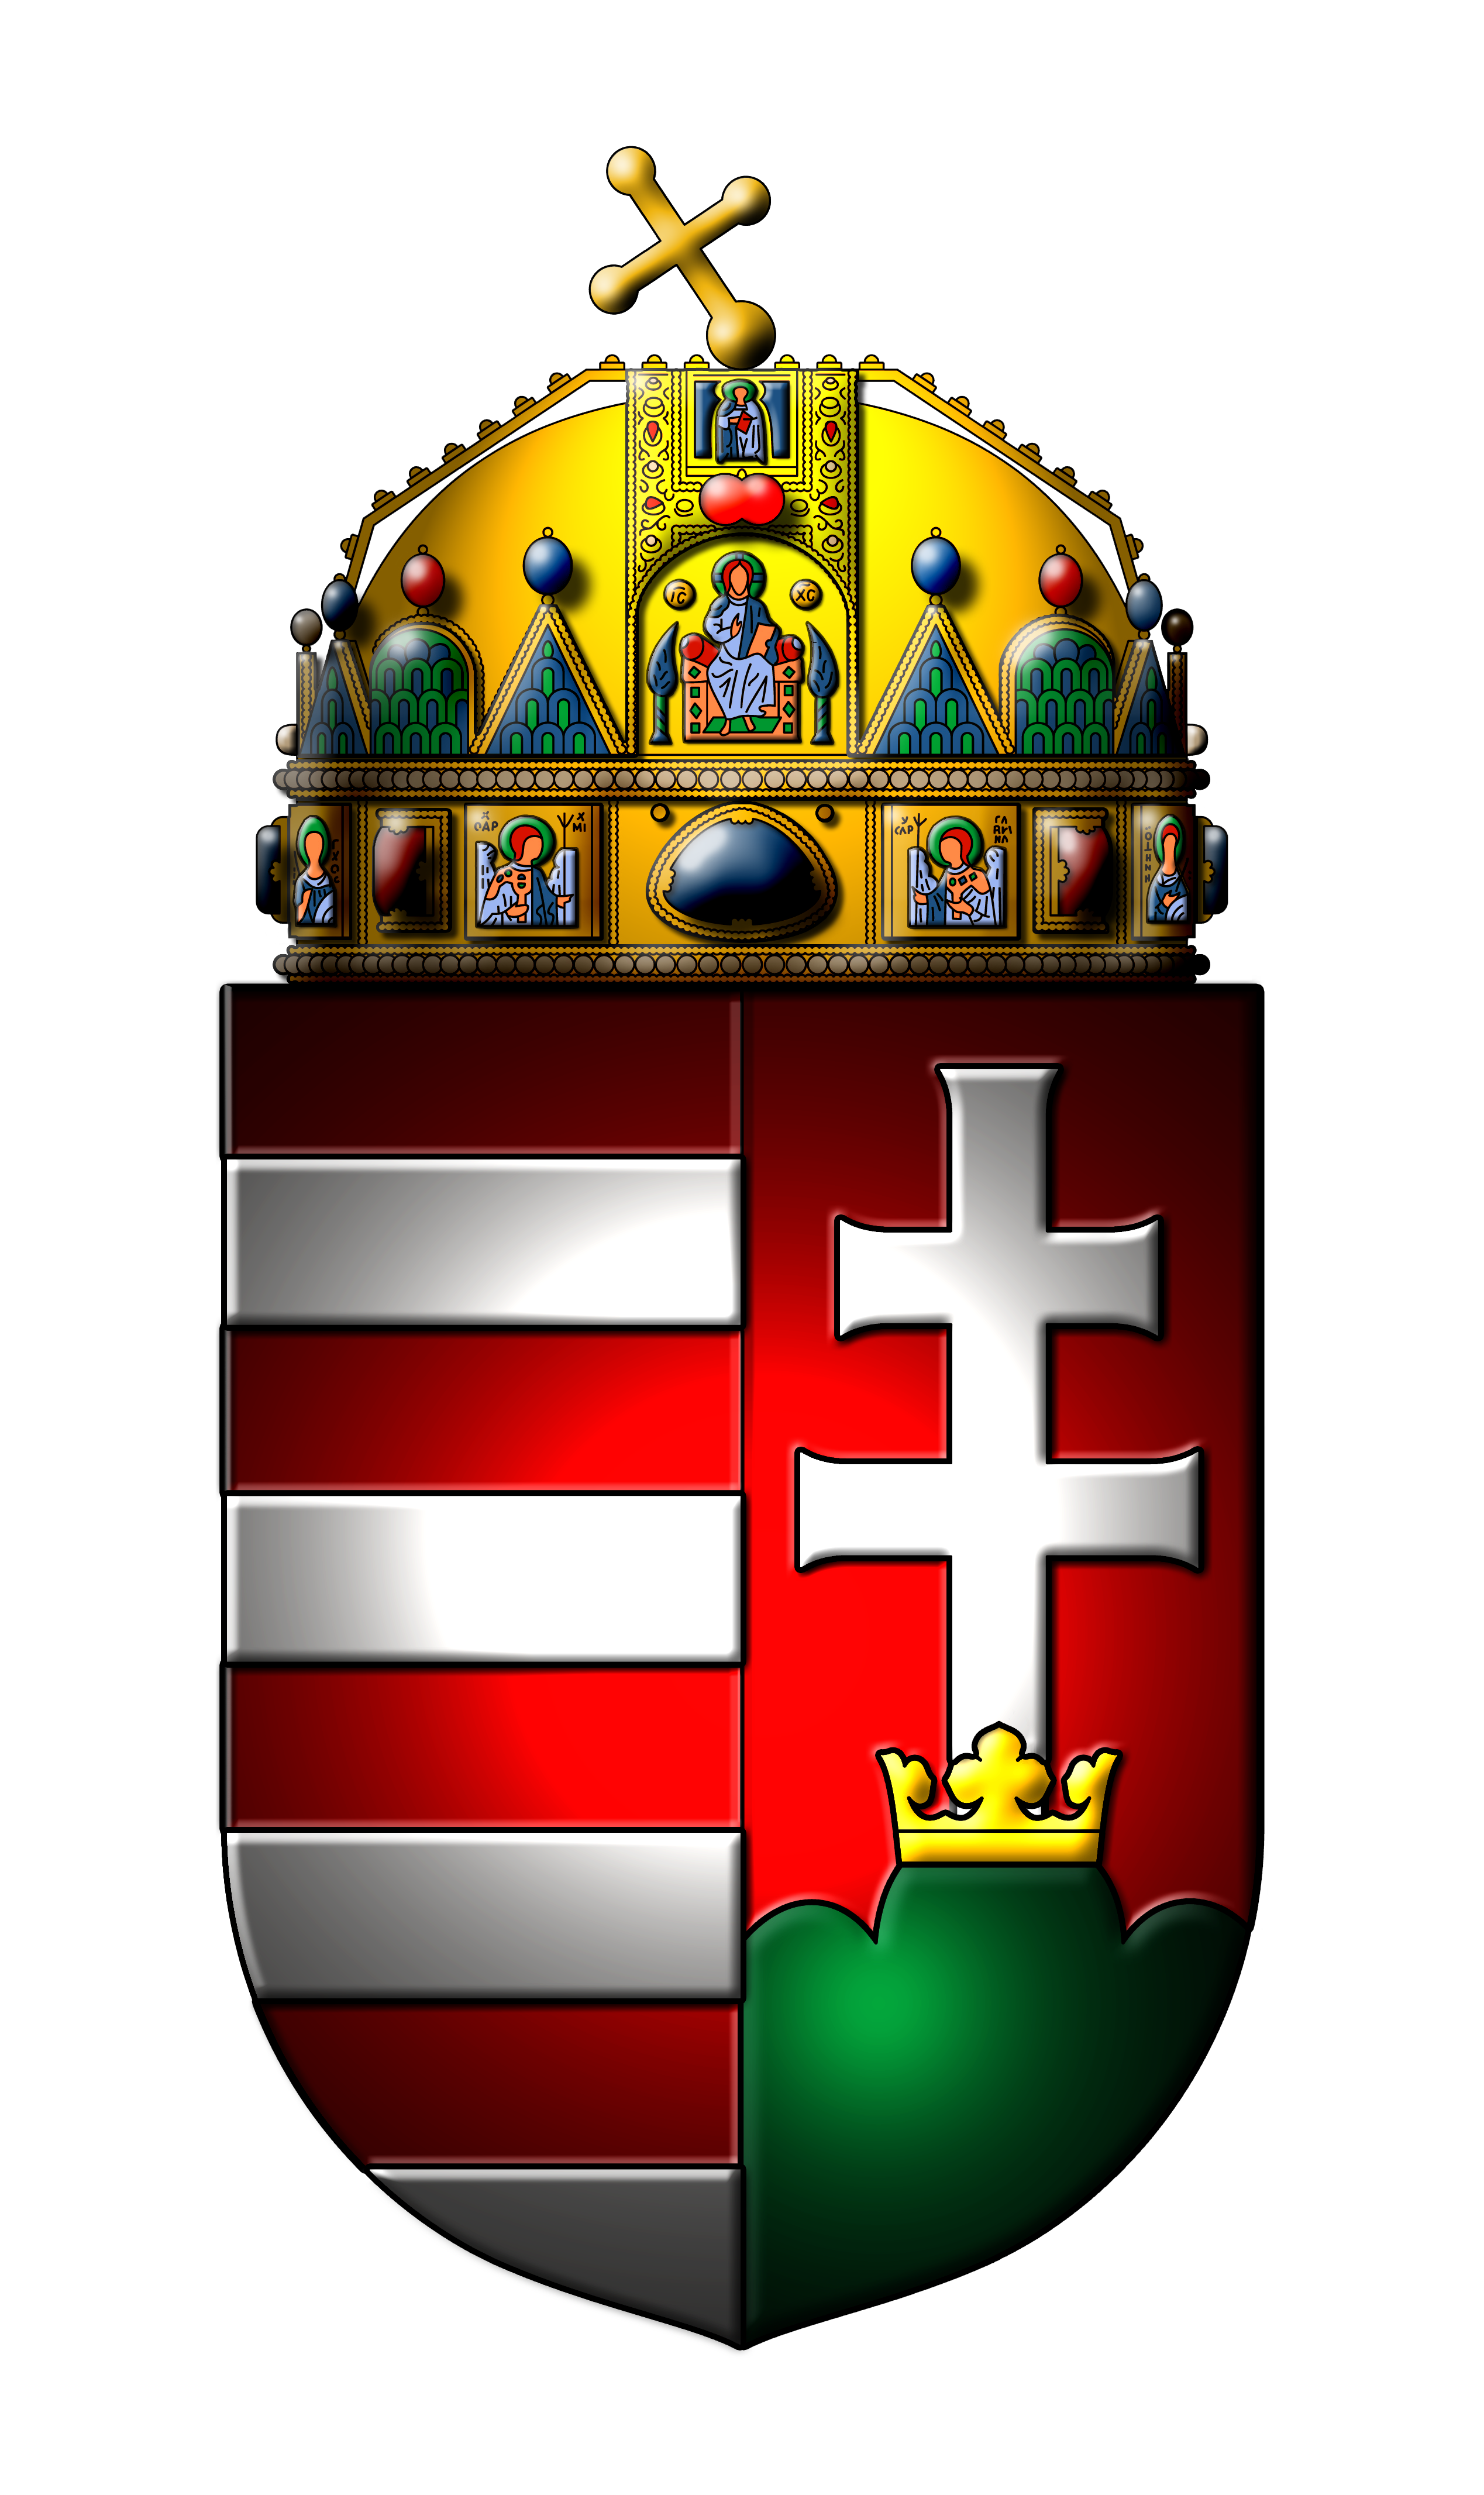 http://marinettedesign.do.am/Budapest/Coat_of_Arms_of_Hungary.png